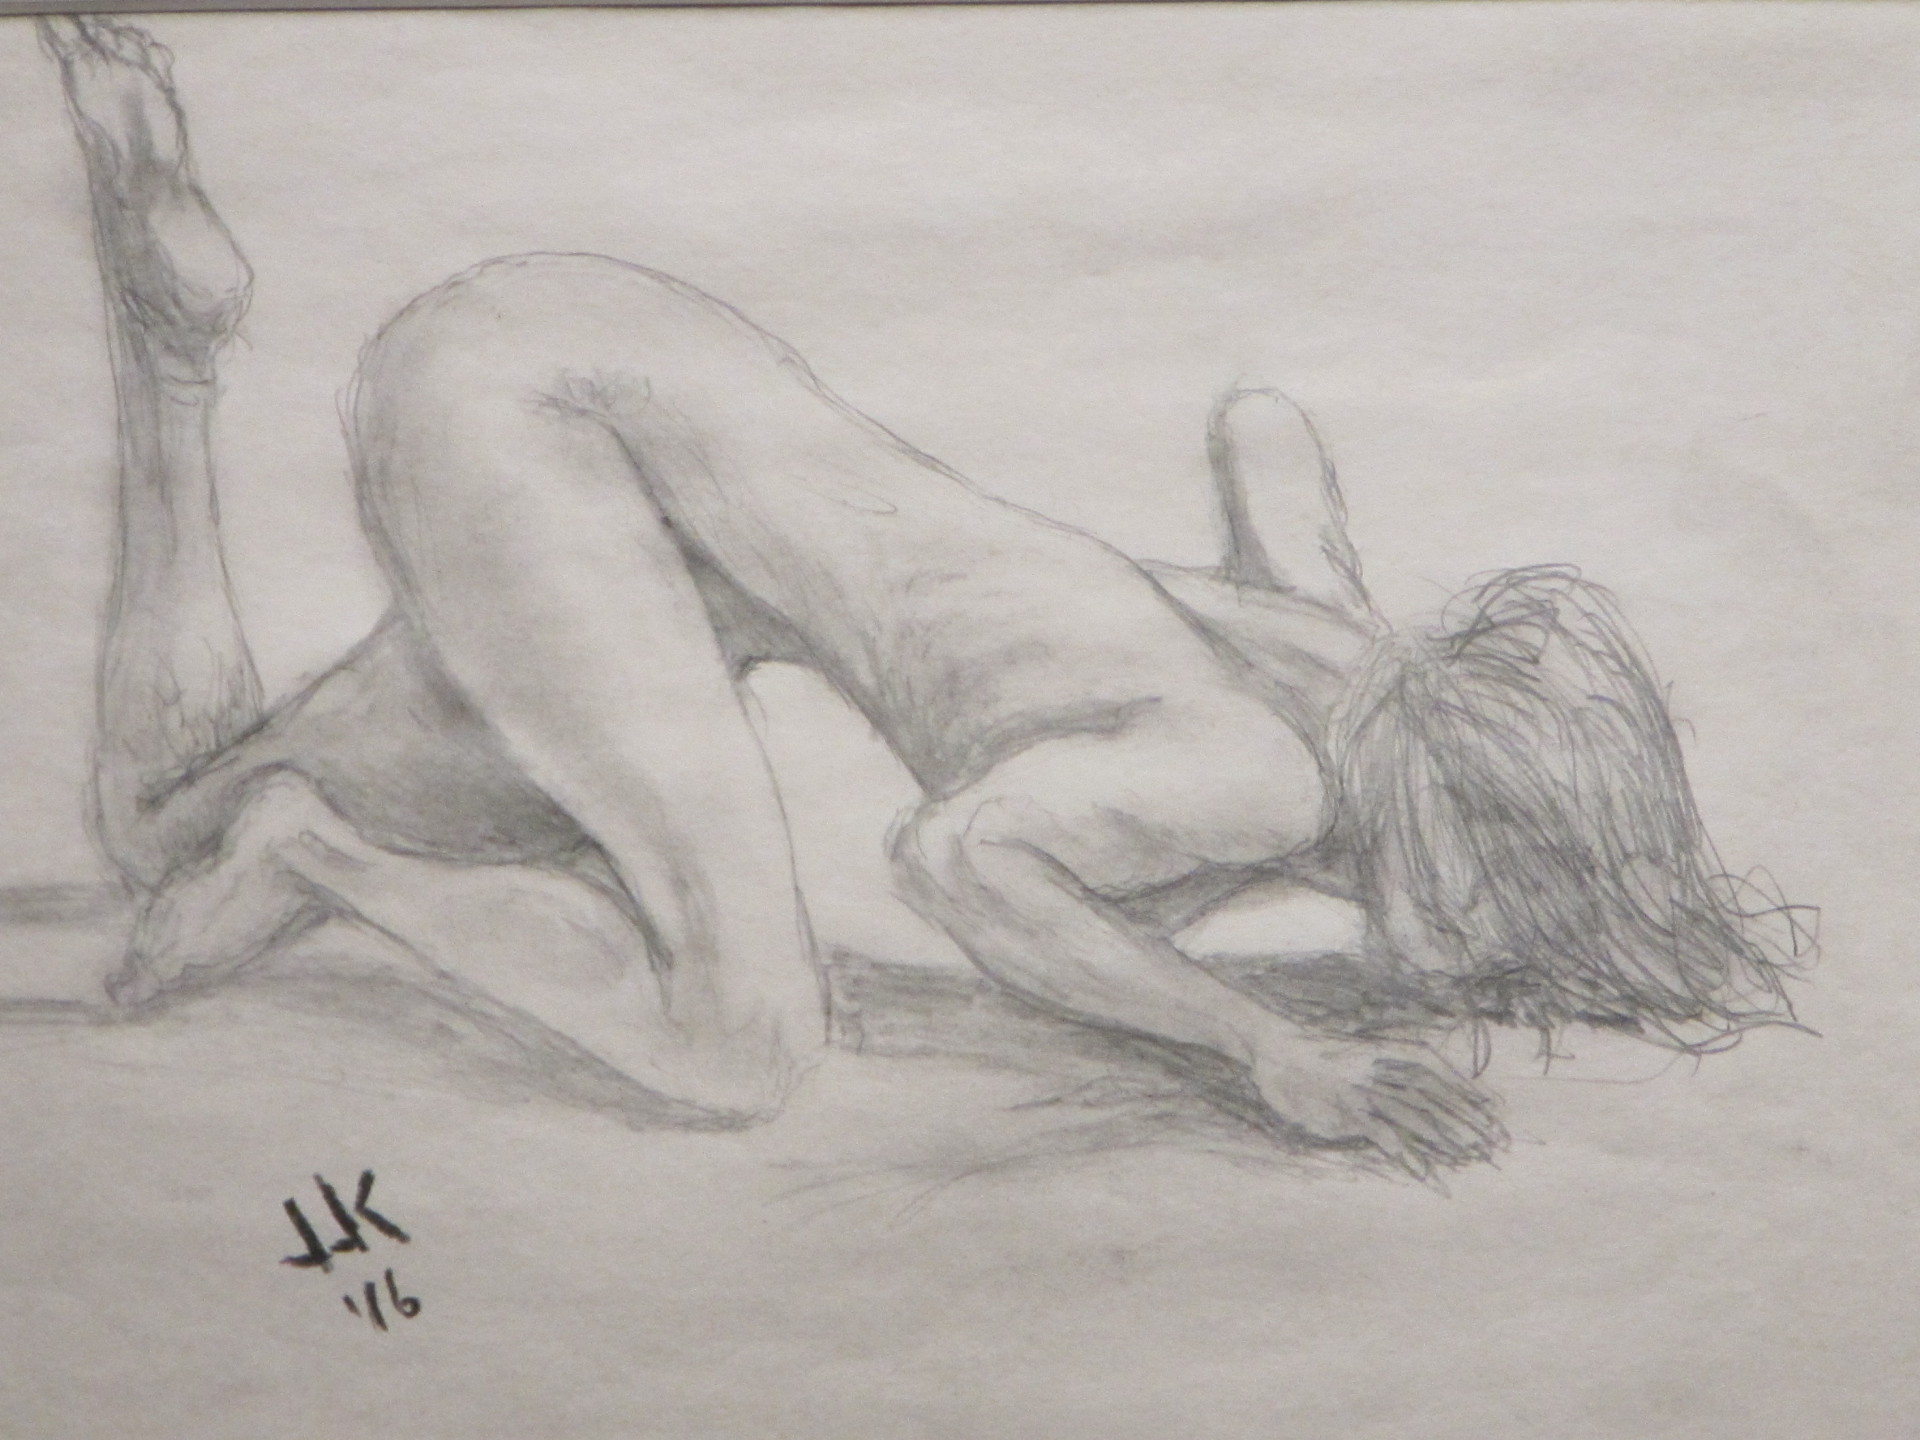 Pencil drawing of a nude woman on the floor in a seductive pose.